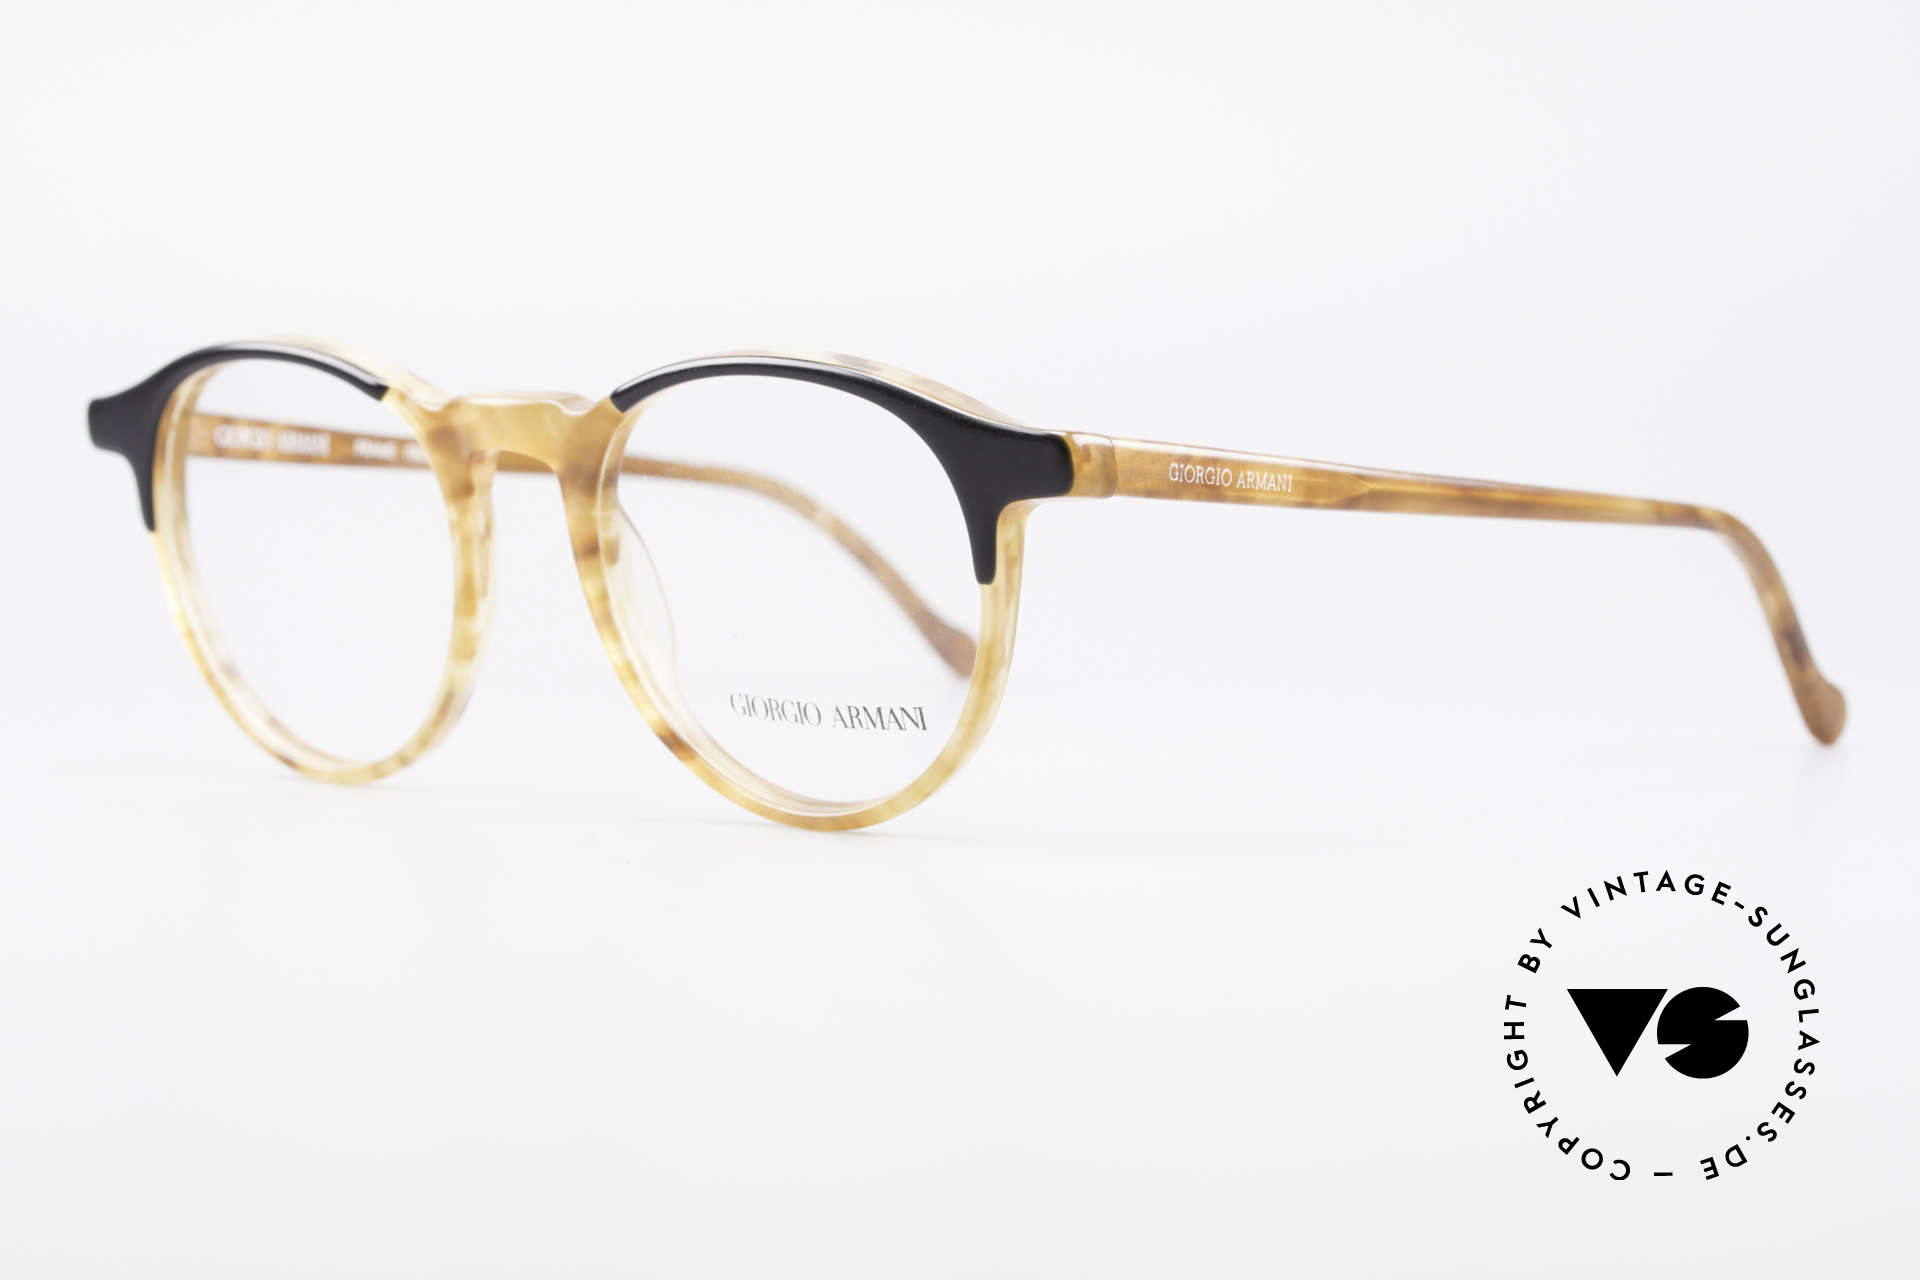 Giorgio Armani 301 Johnny Depp Style Panto Frame, inspired by the 'Tart Optical Arnel' frames of the 1960's, Made for Men